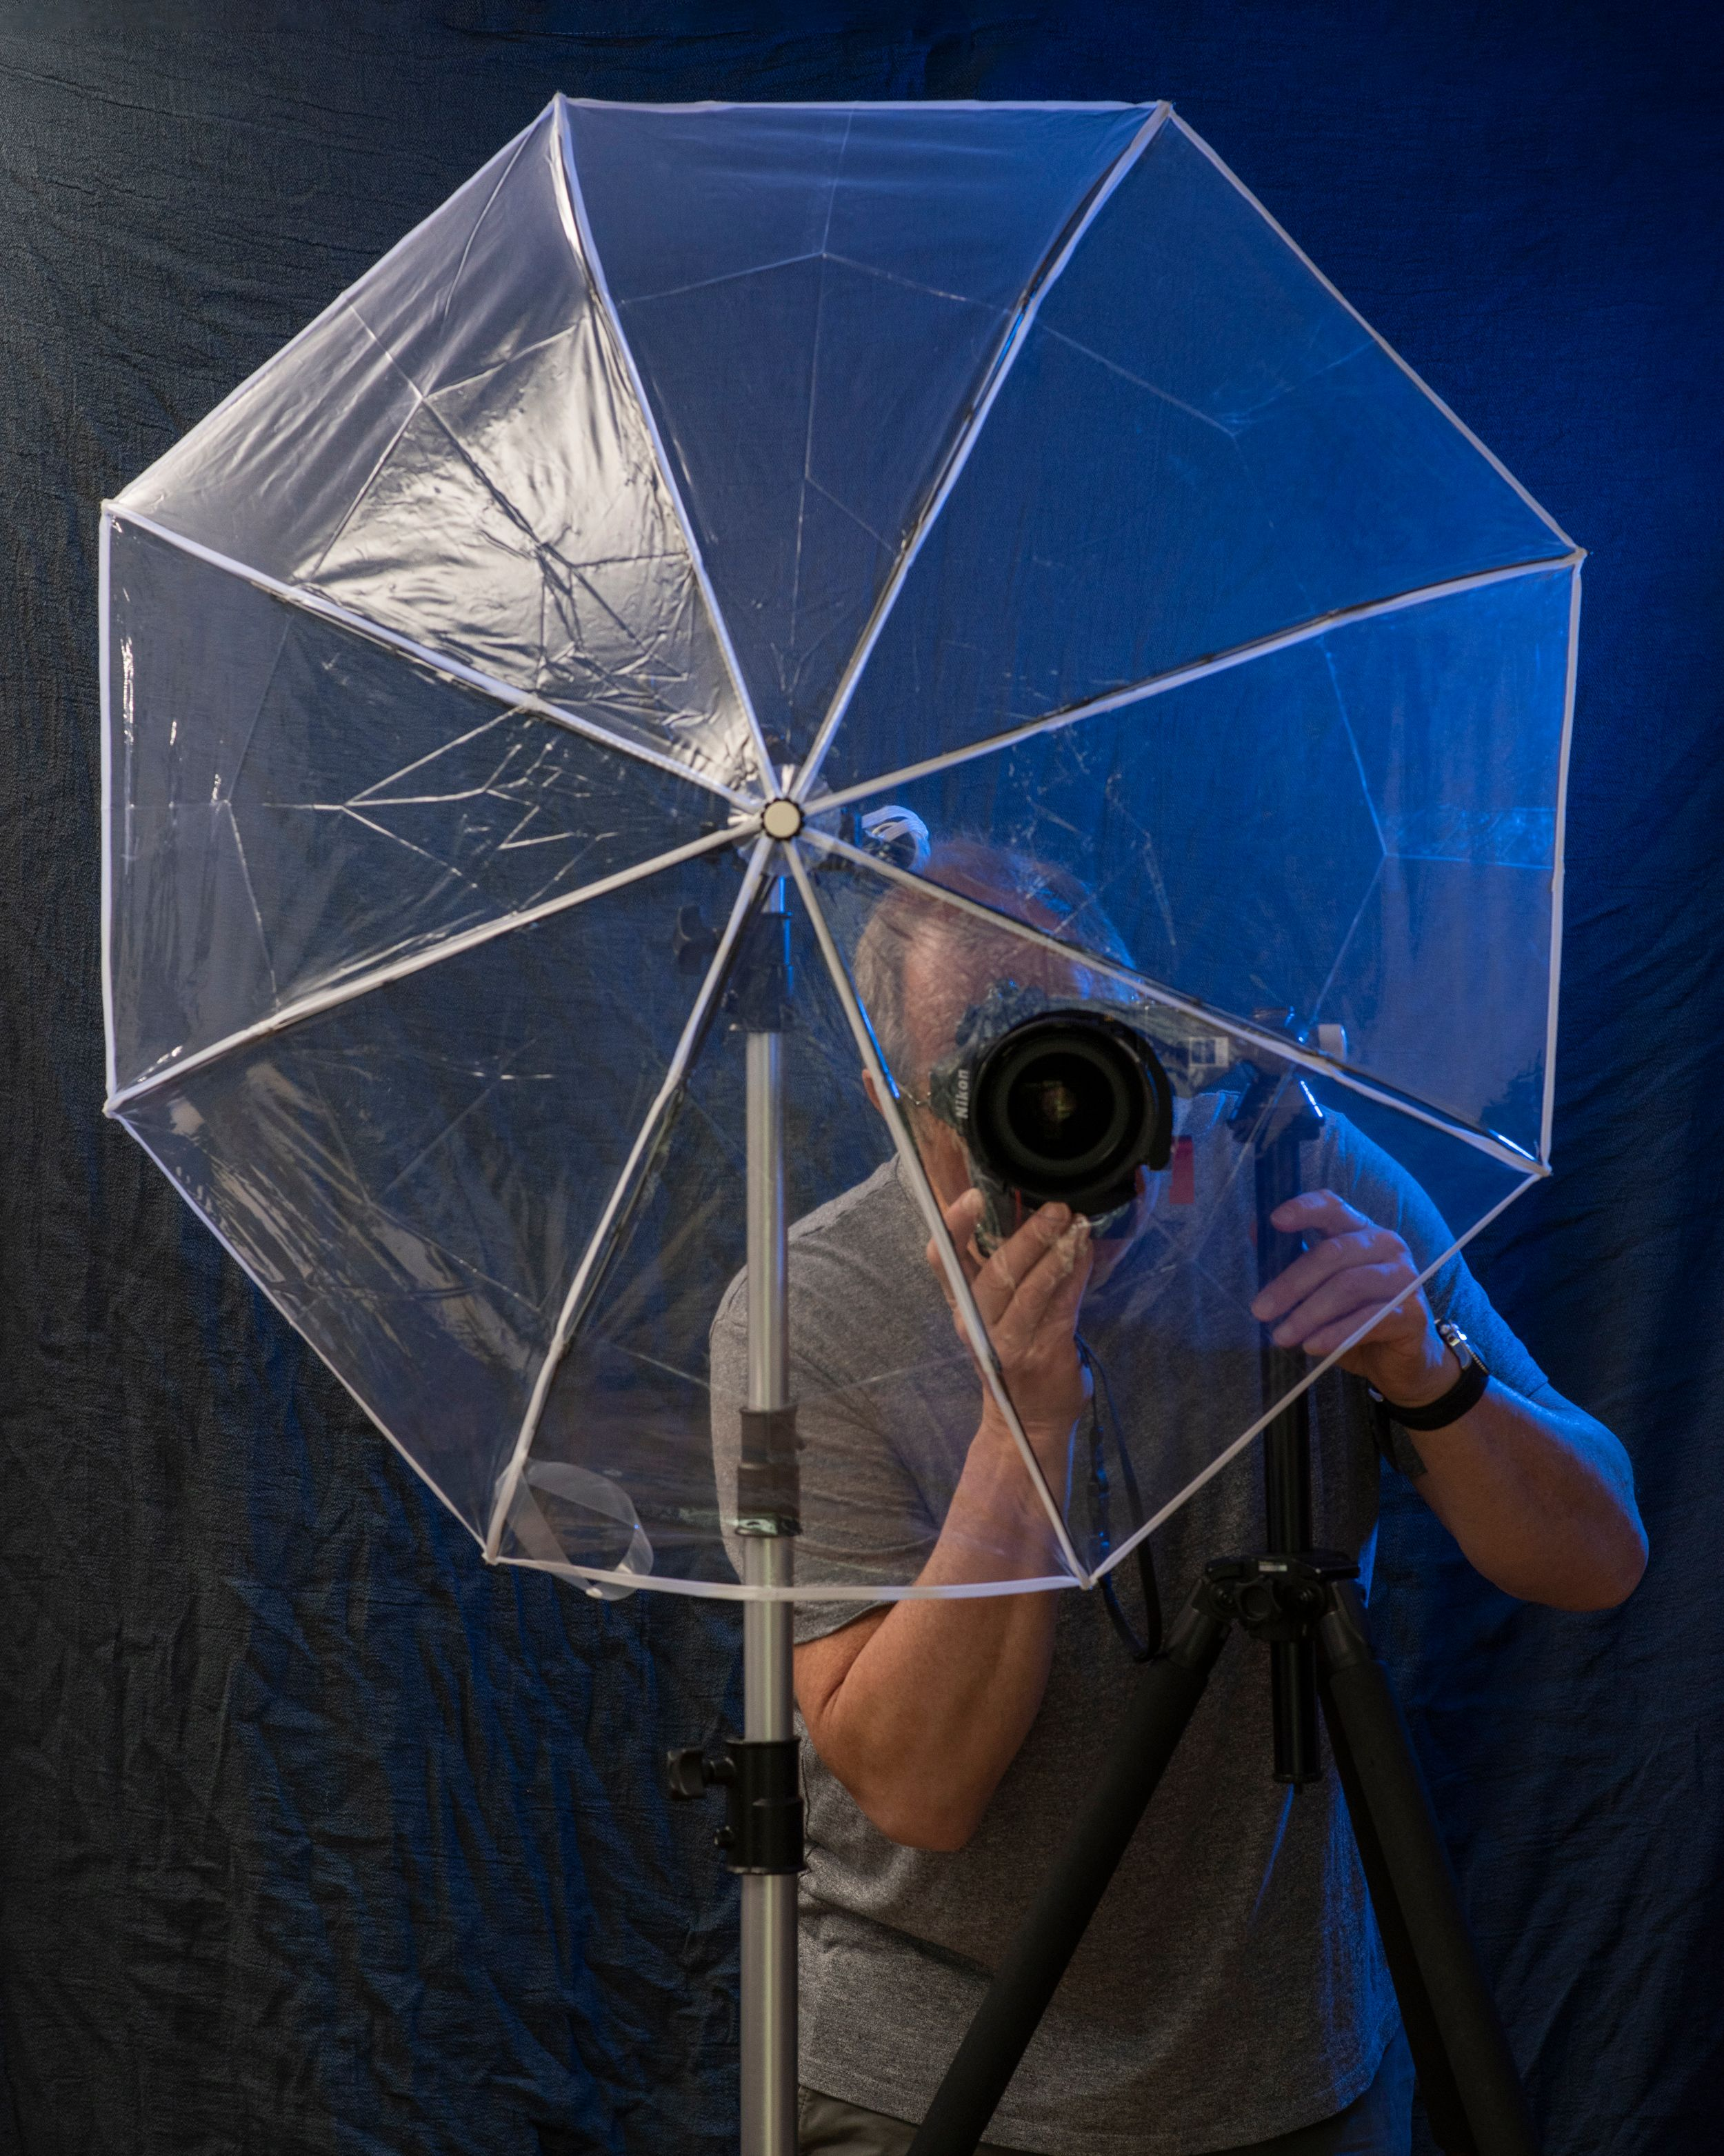 Transpaent Umbrella with photographer